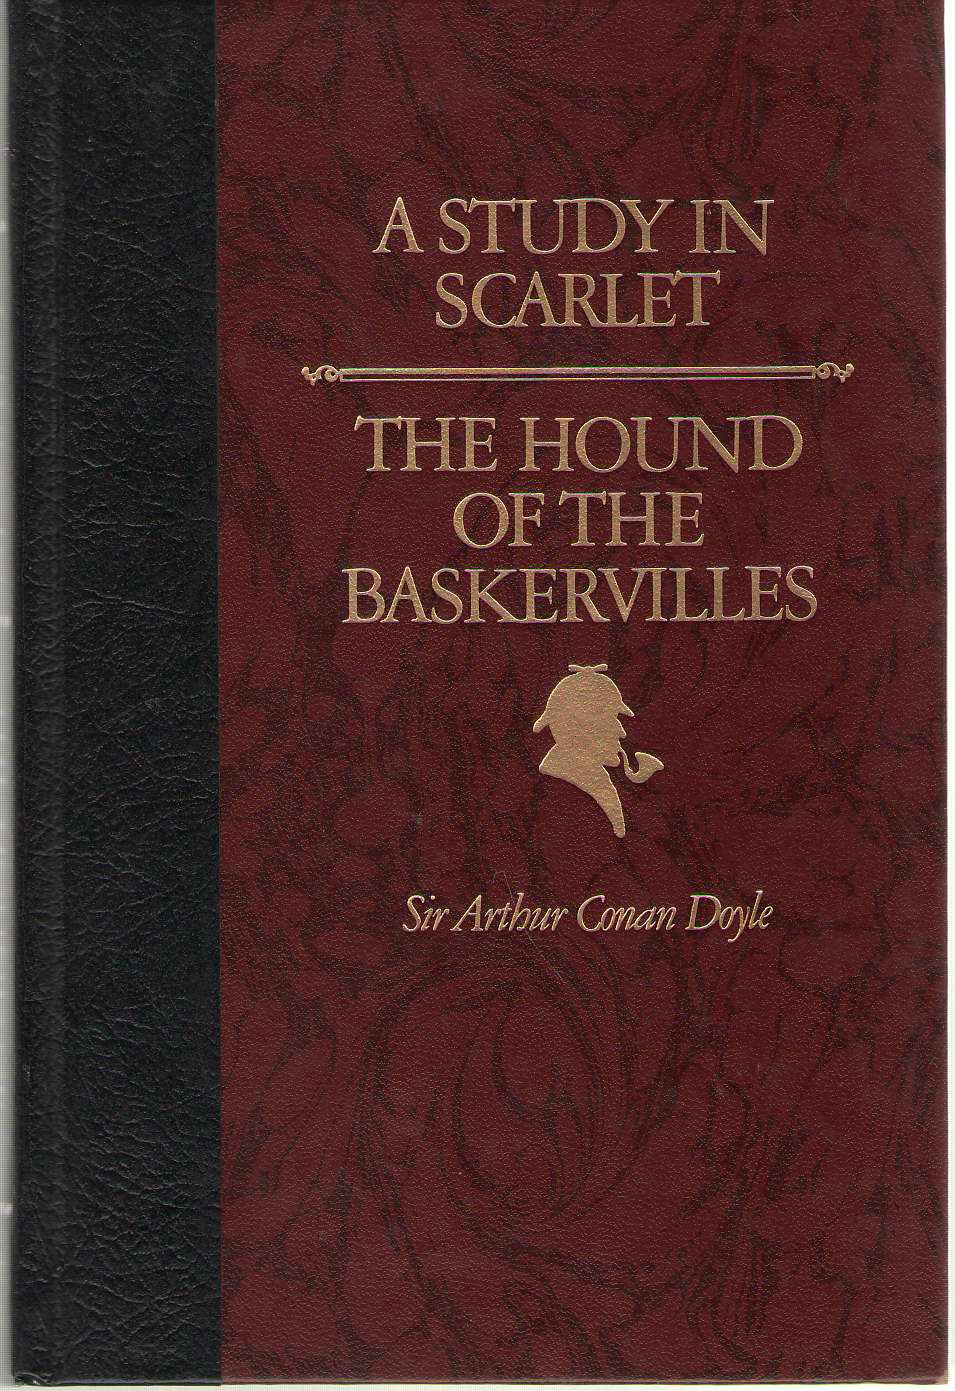 A Study in Scarlet & the Hound of the Baskervilles, Sir Arthur Conan Doyle & Greg Spalenka & G. K. Chesterton